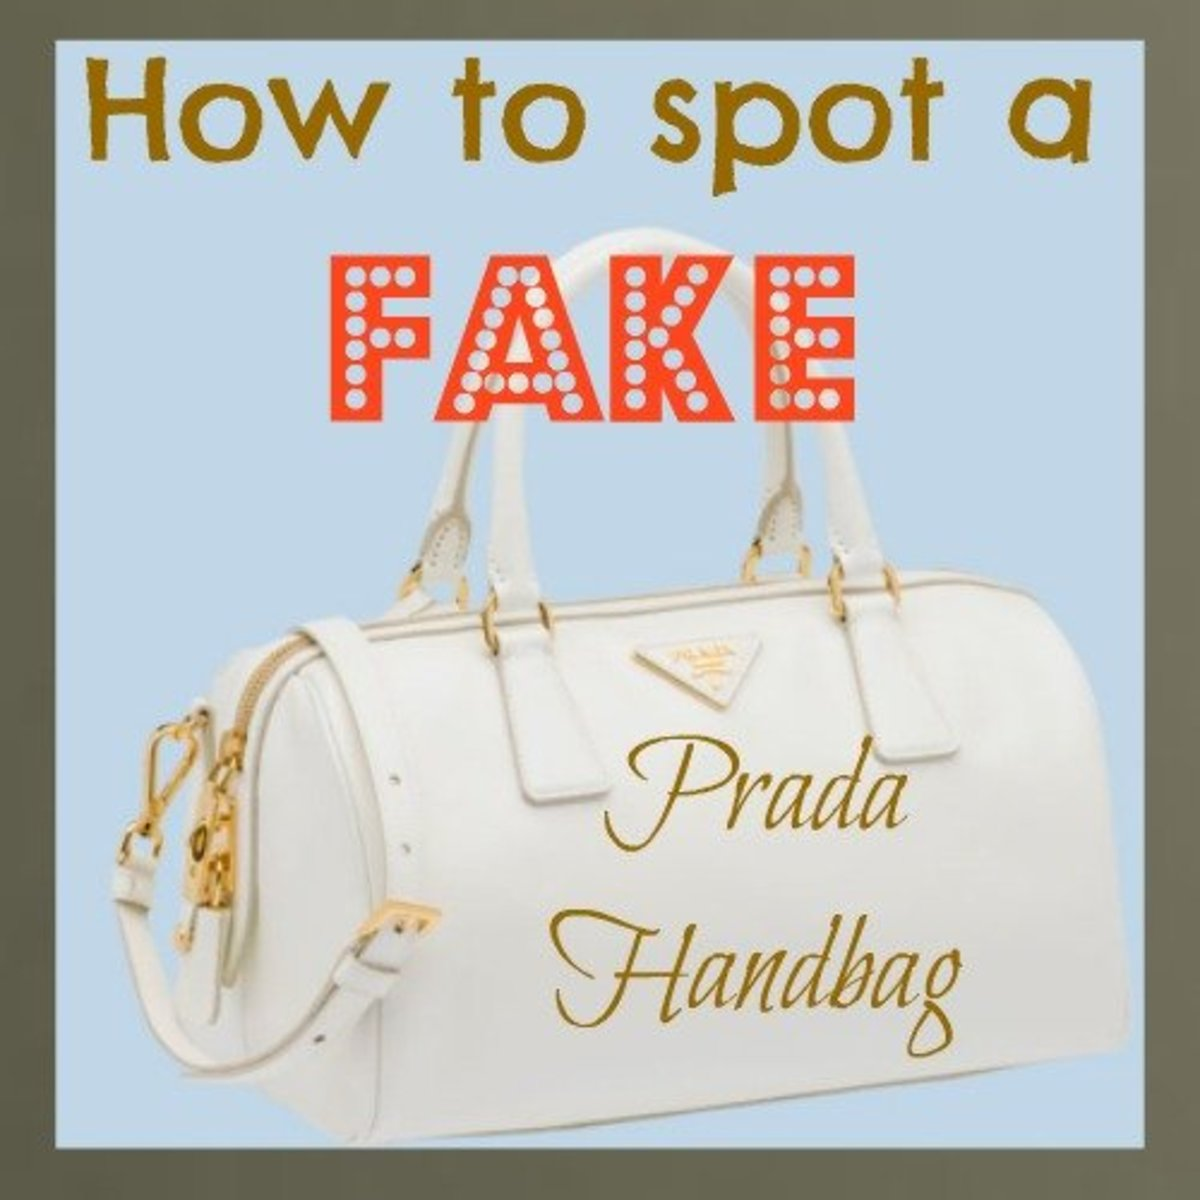 How To Spot A Fake Prada Bag Purse Or Wallet Without An